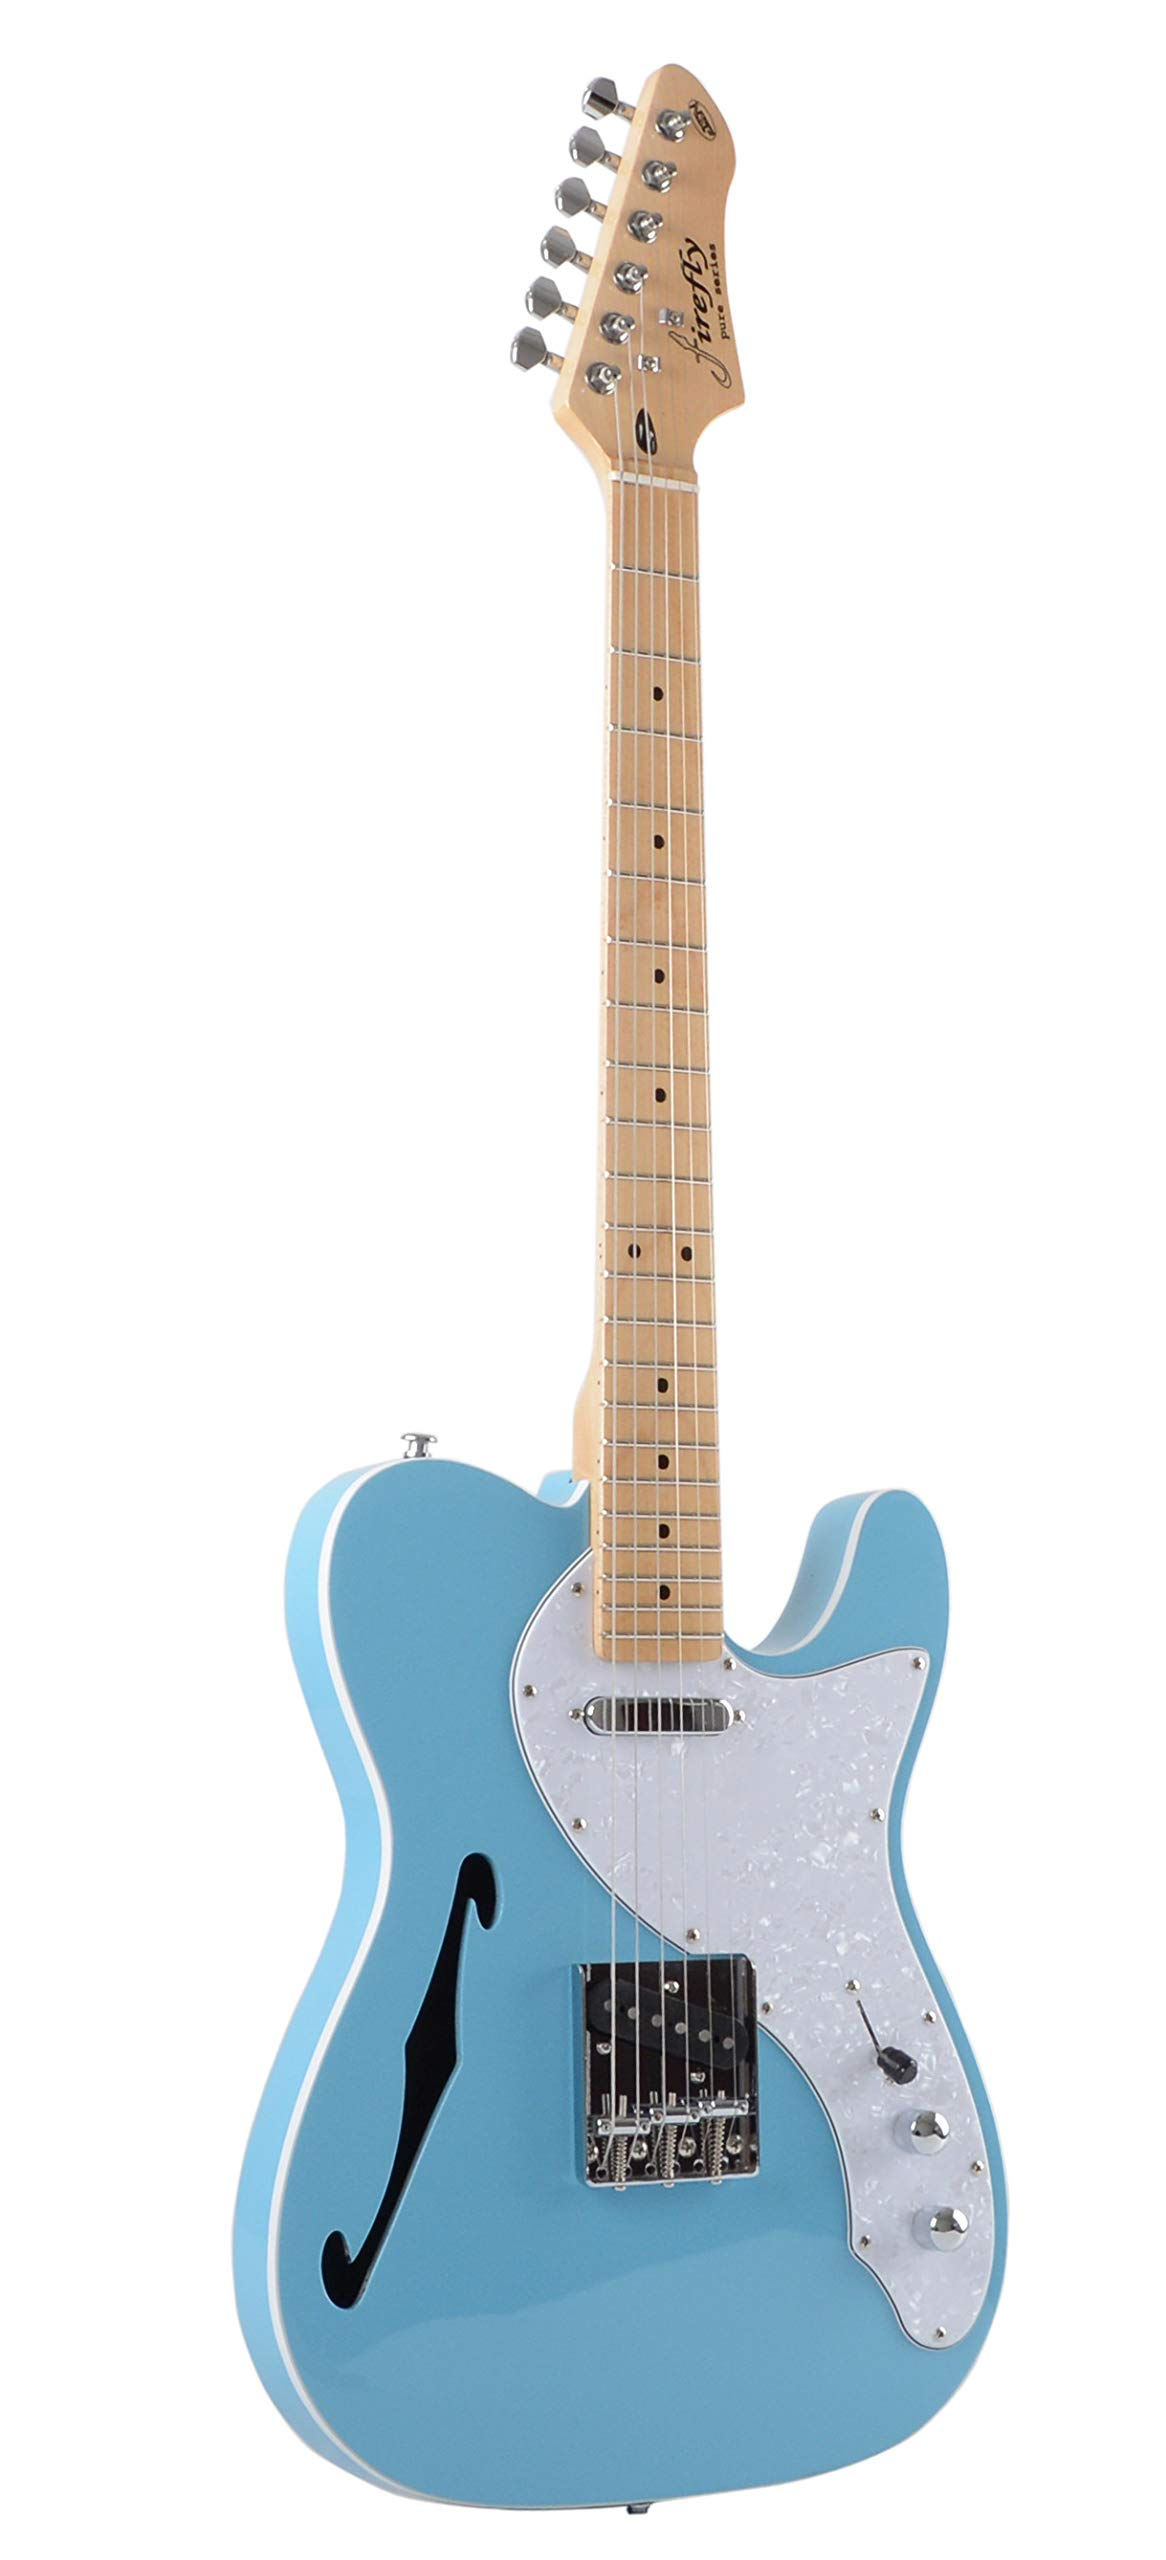 Firefly FFTH Semi-Hollow body Guitar (Blue Color) by Firefly